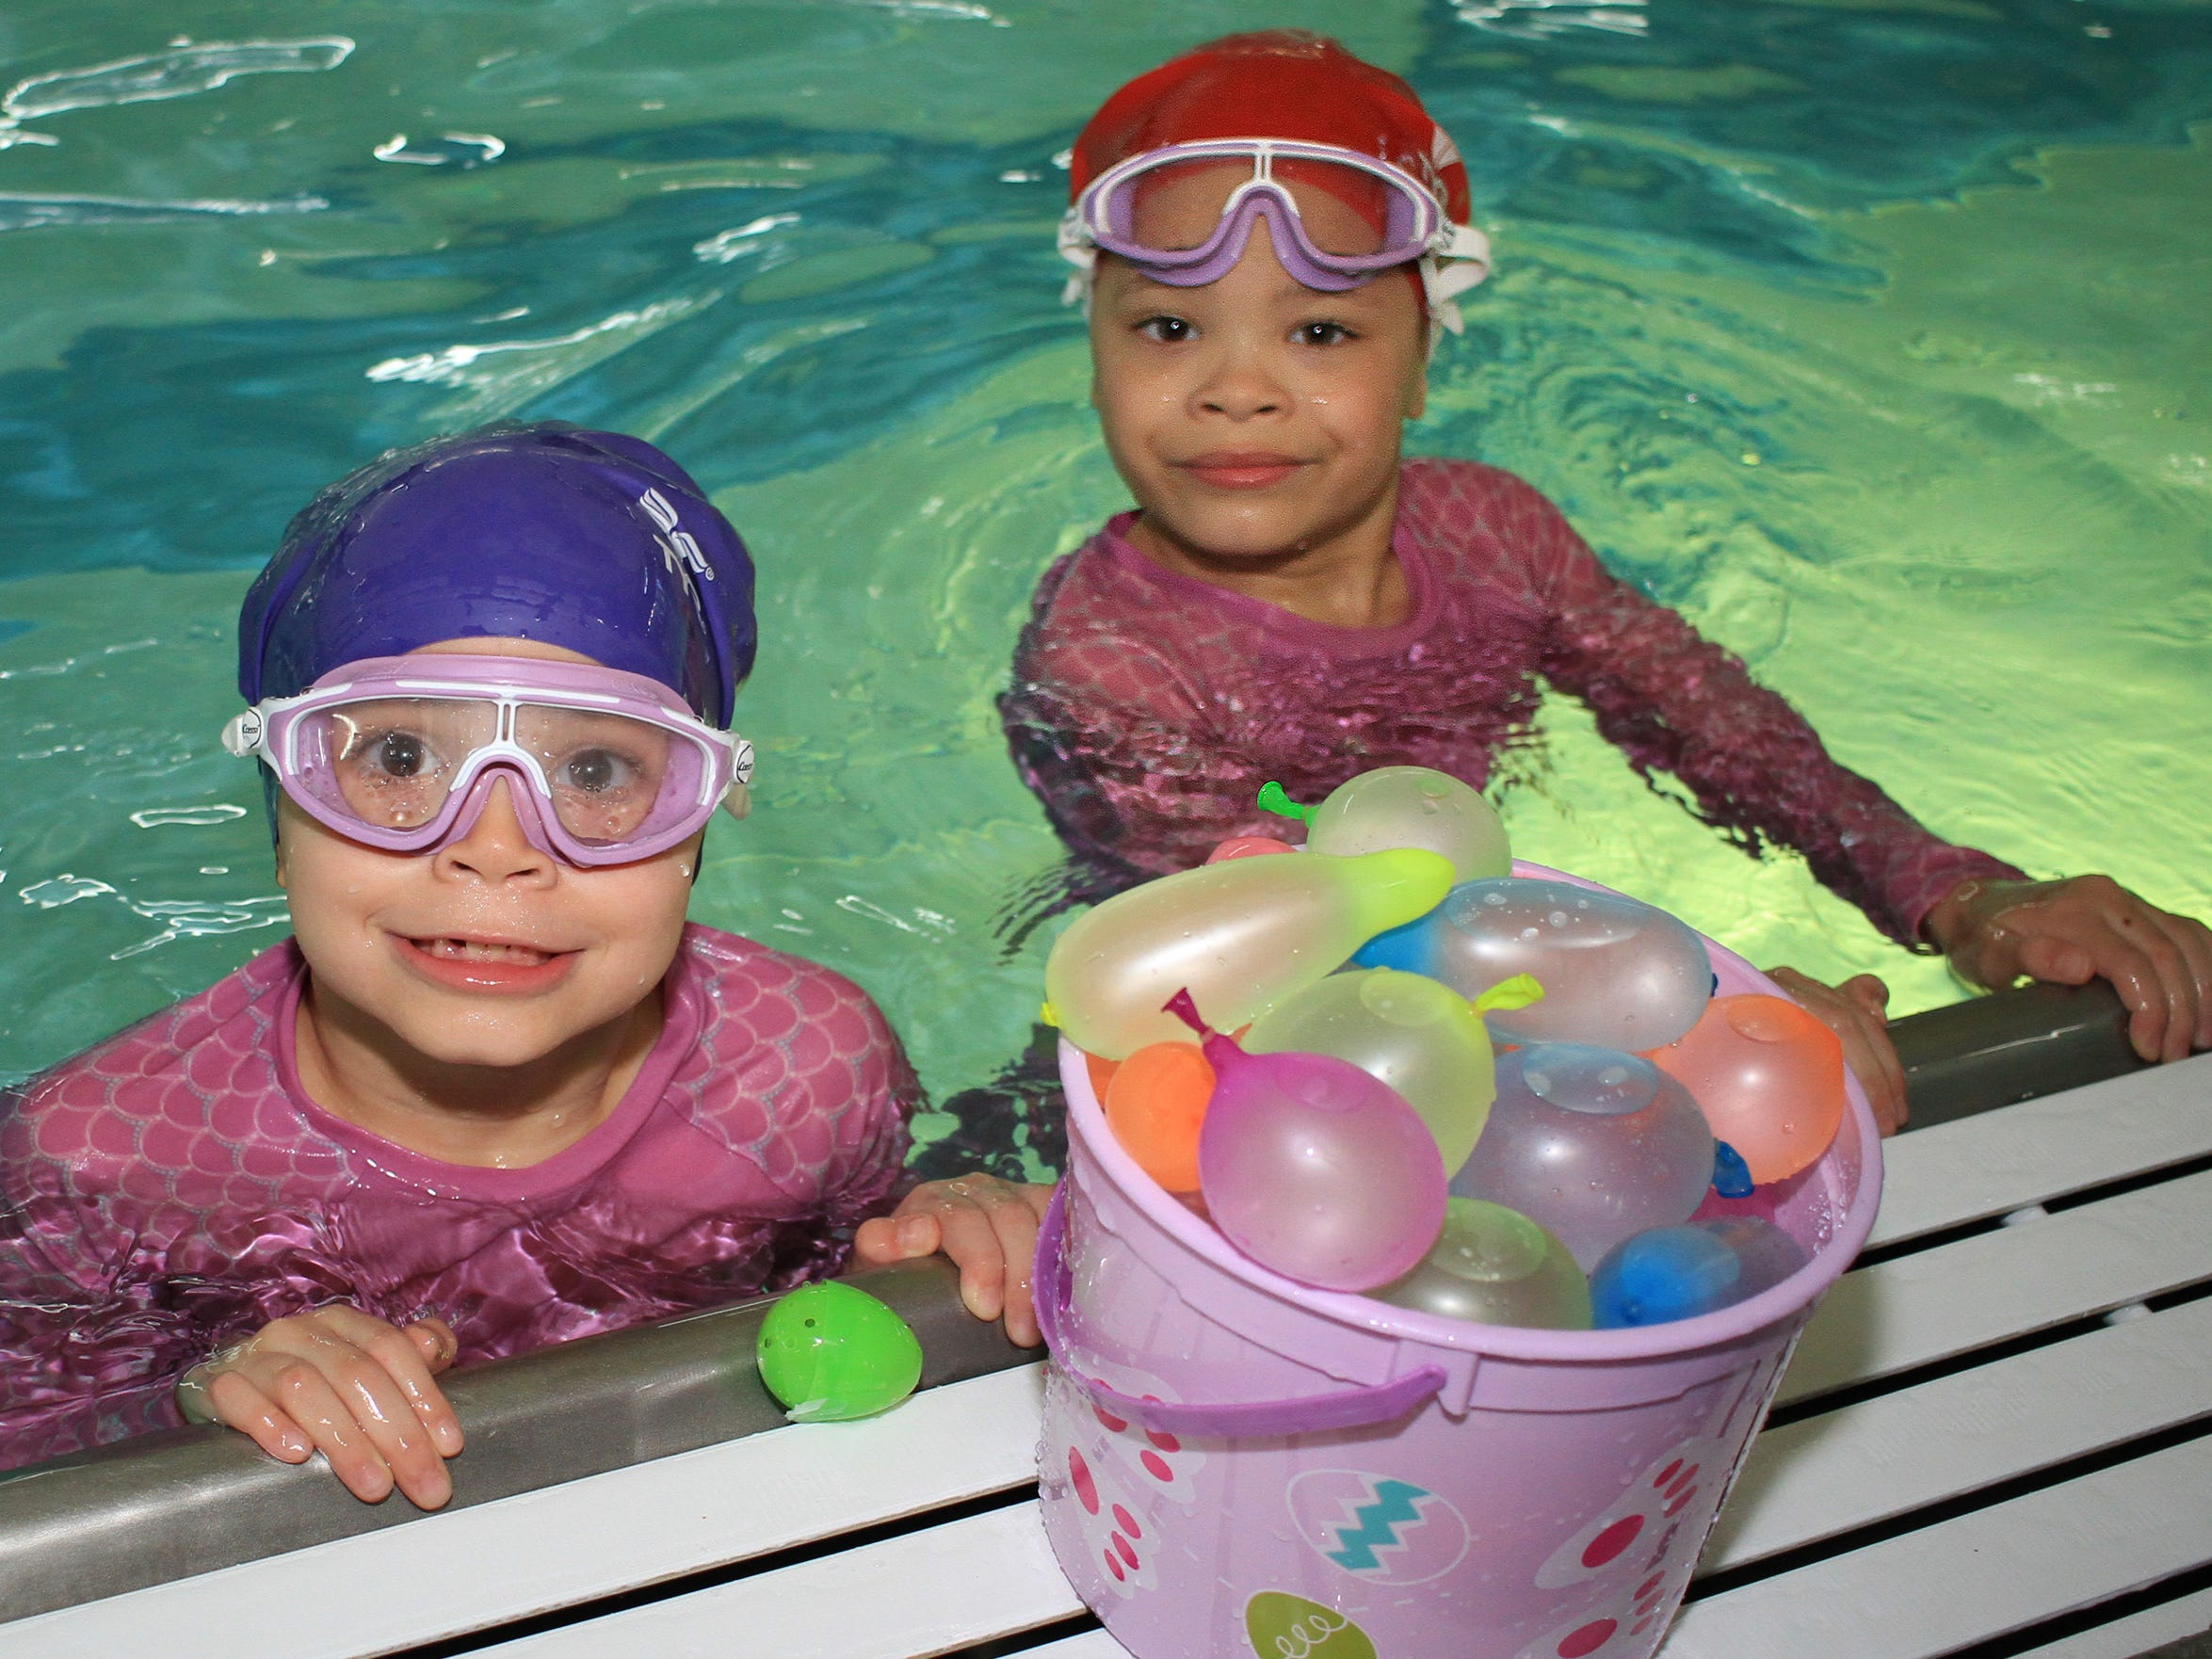 Twins Peyton and Cameron Boyn (6) gather their eggs at The Easter Egg Dive at the Sumner County YMCA in Hendersonville, TN on Saturday, April 13, 2019.